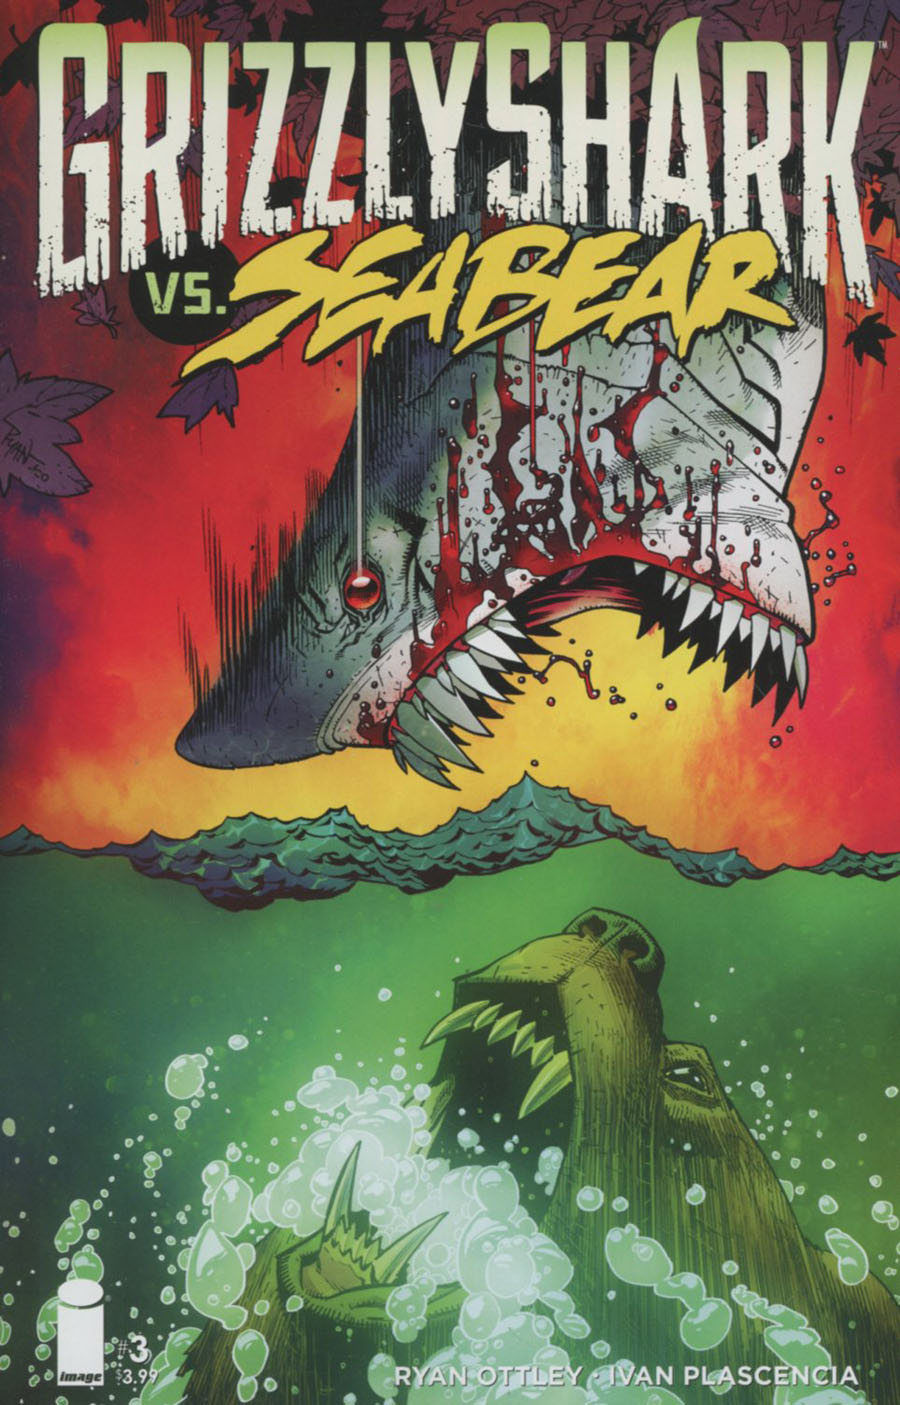 Grizzly Shark #3